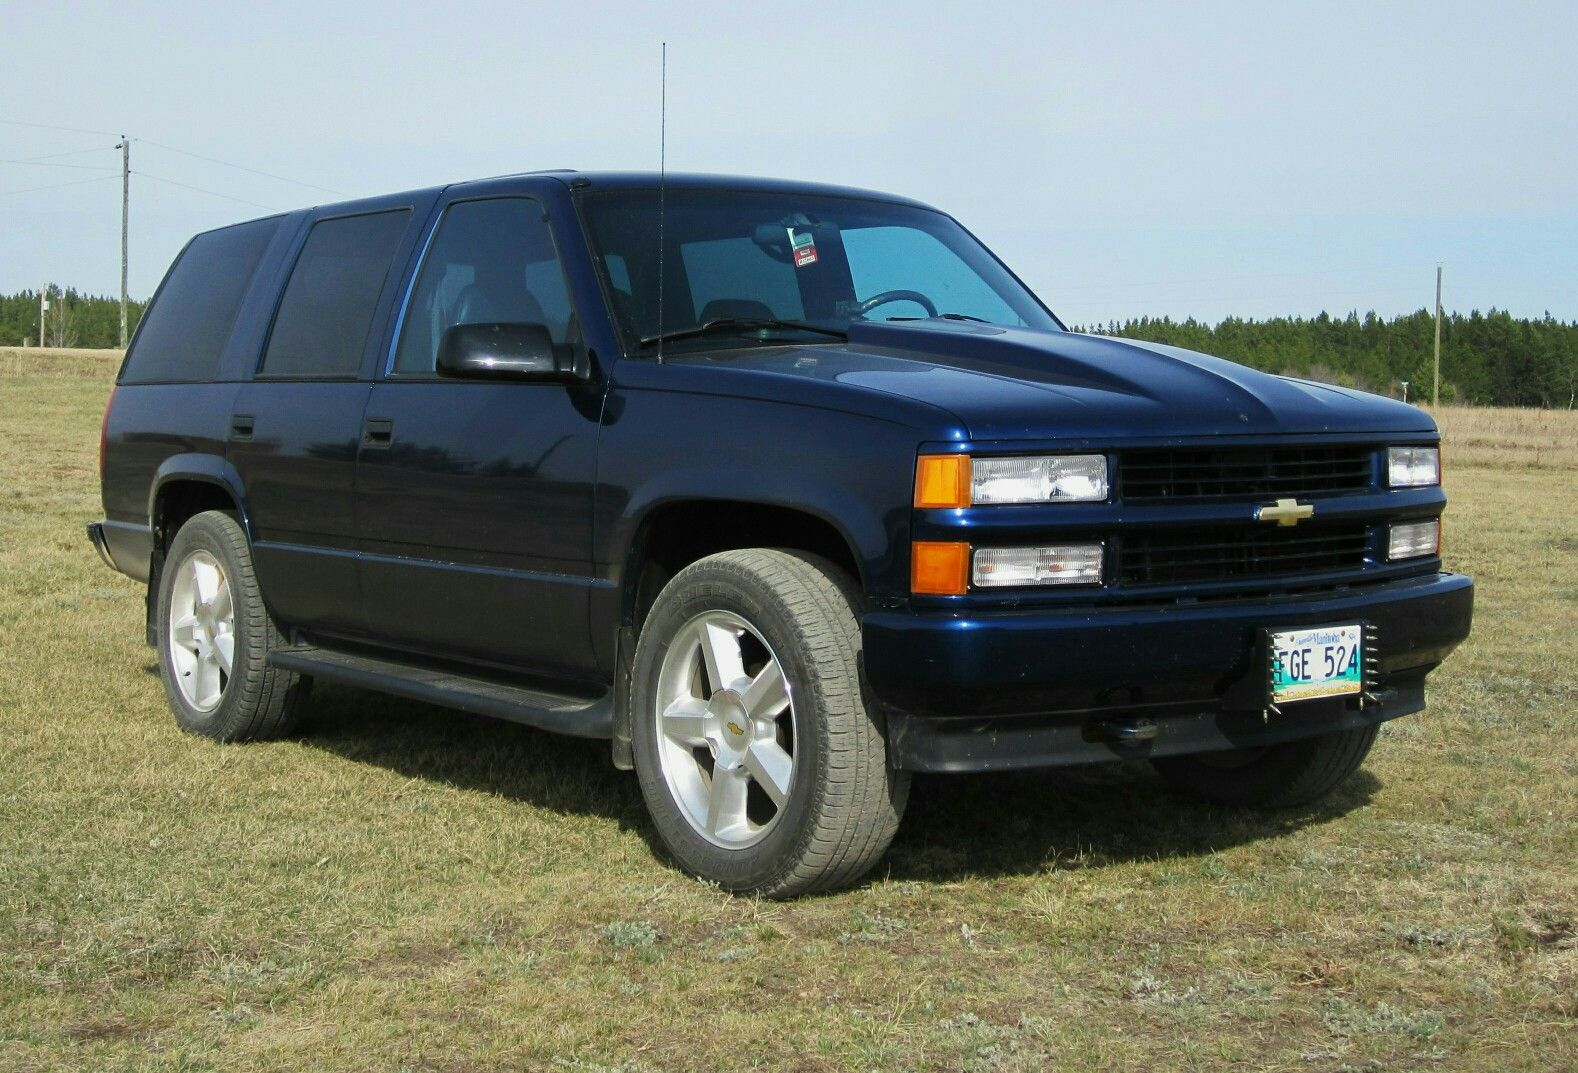 2000 chevrolet tahoe chevrolet pinterest chevrolet tahoe chevrolet and chevy